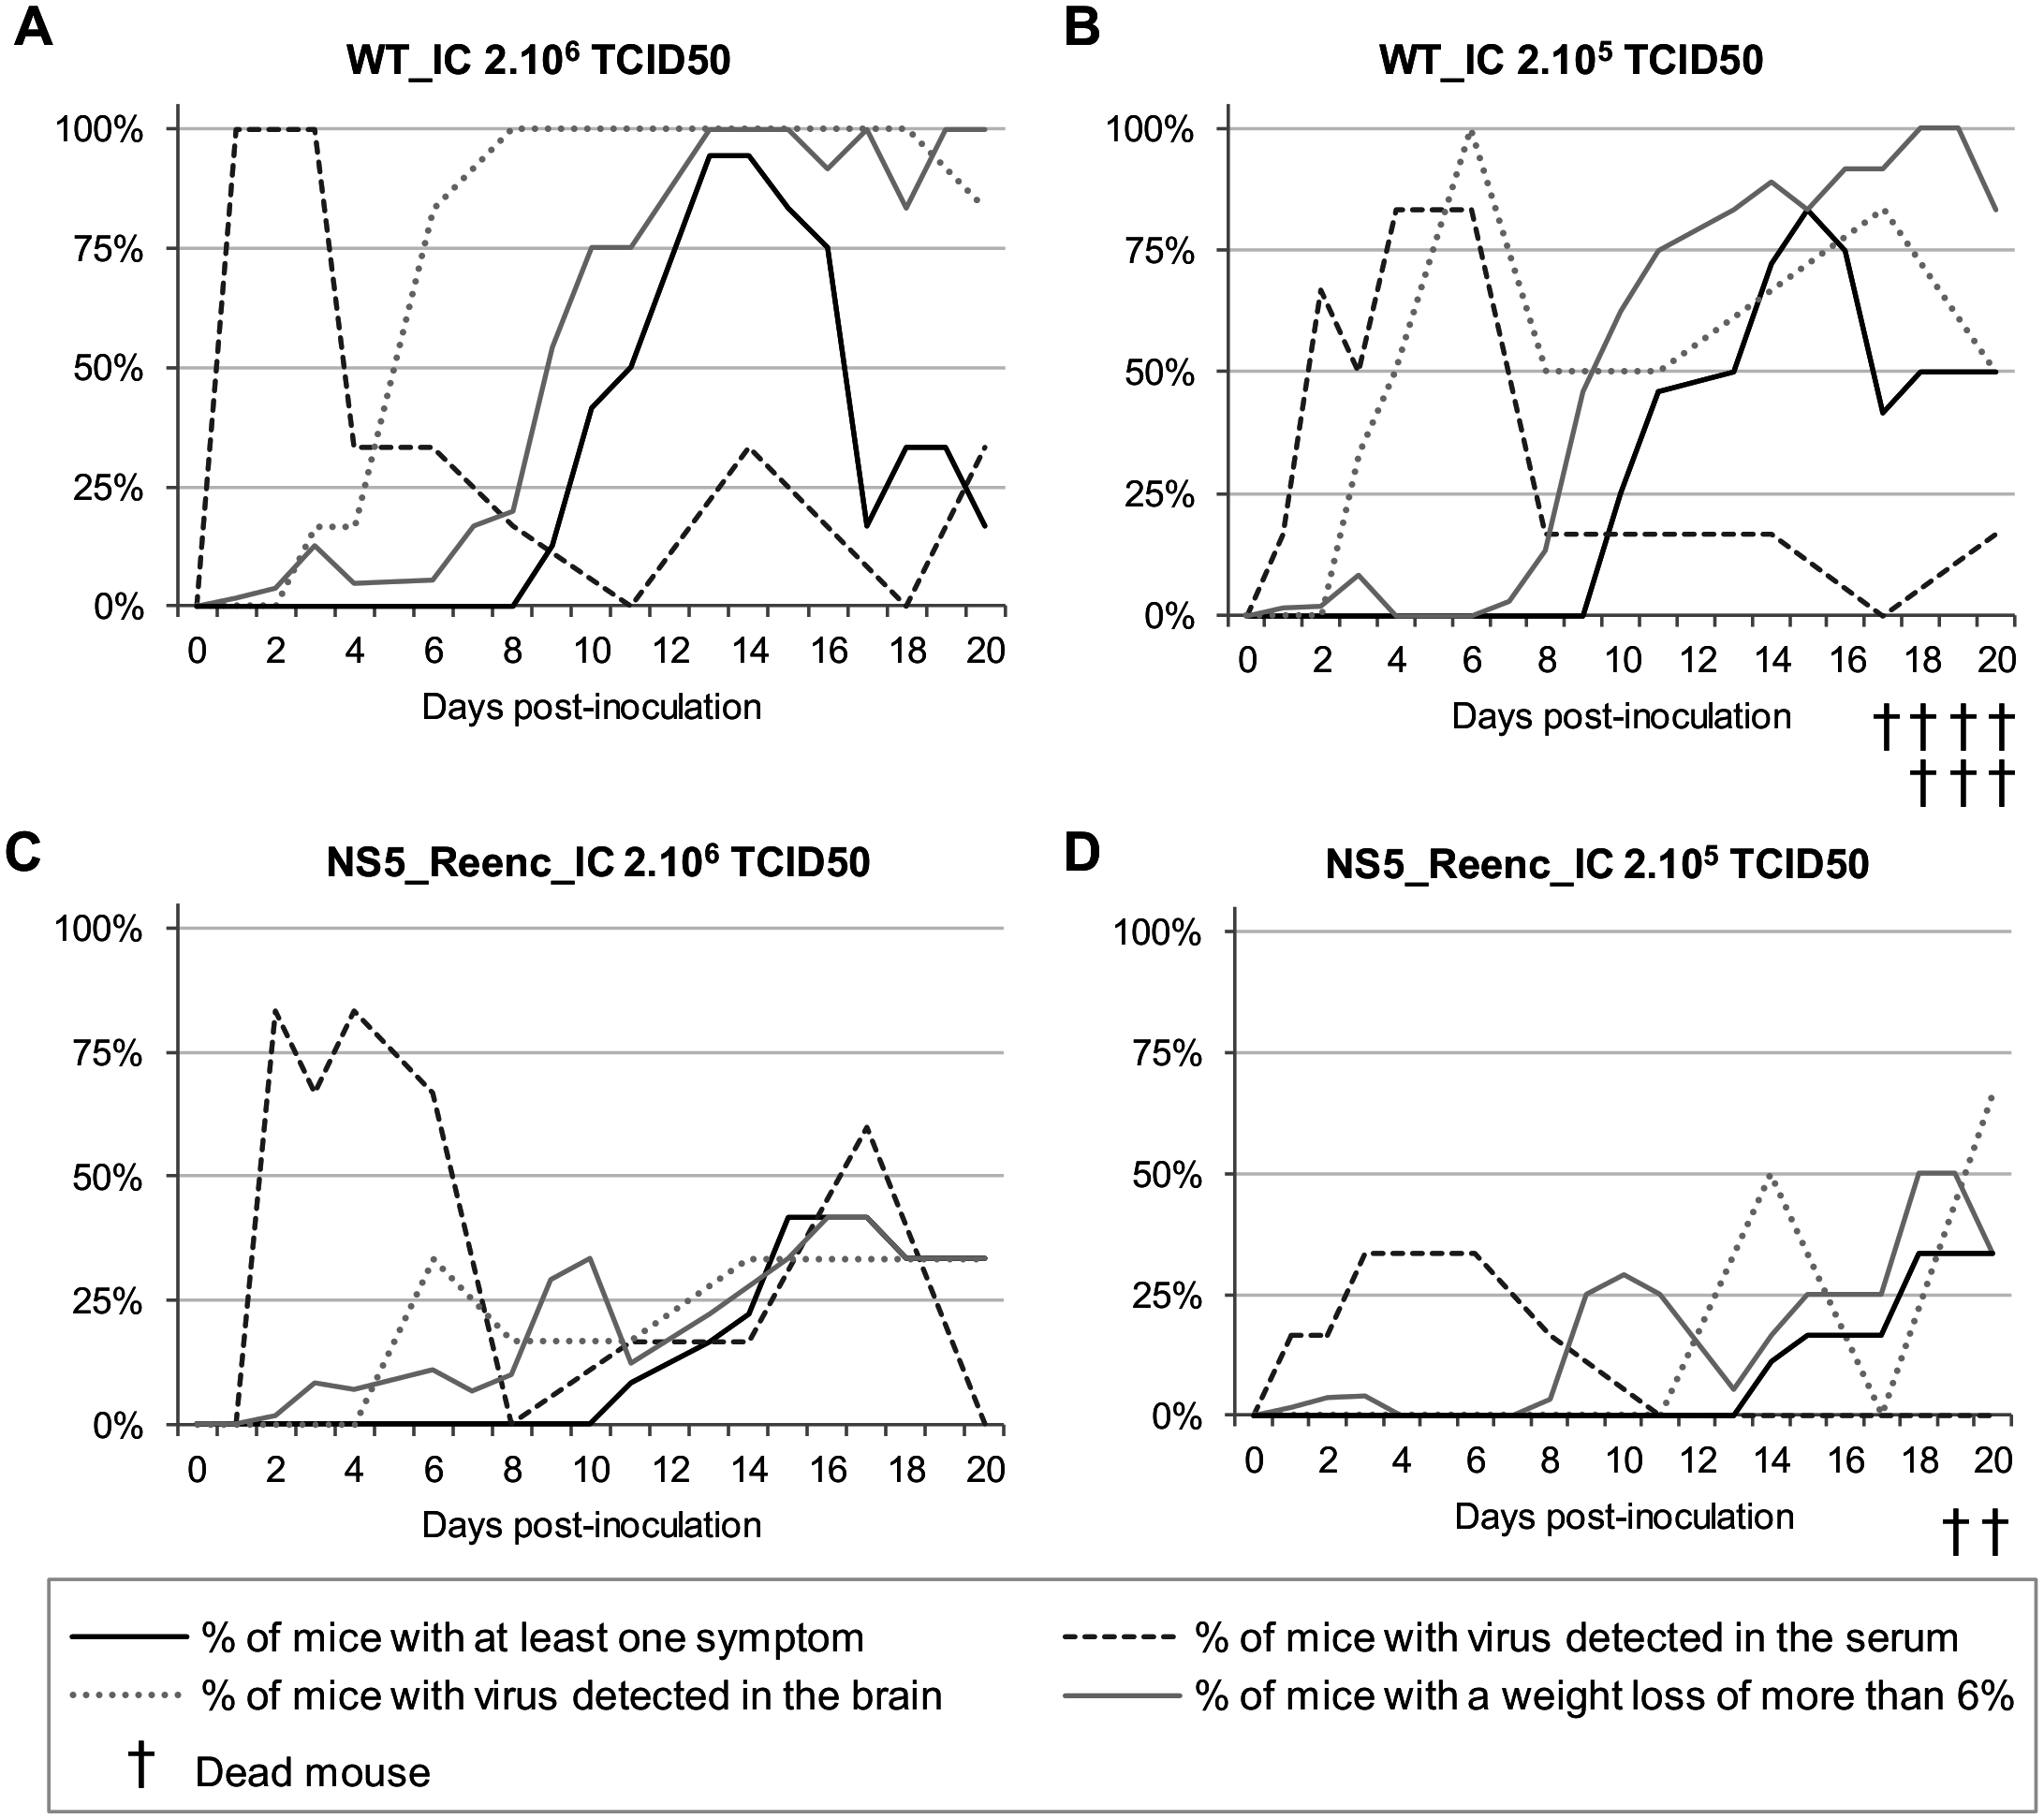 Time distribution of the proportion of mice with at least one symptom, with a weight loss of more than 6% and with virus detected in the serum or in the brain by qRT-PCR.